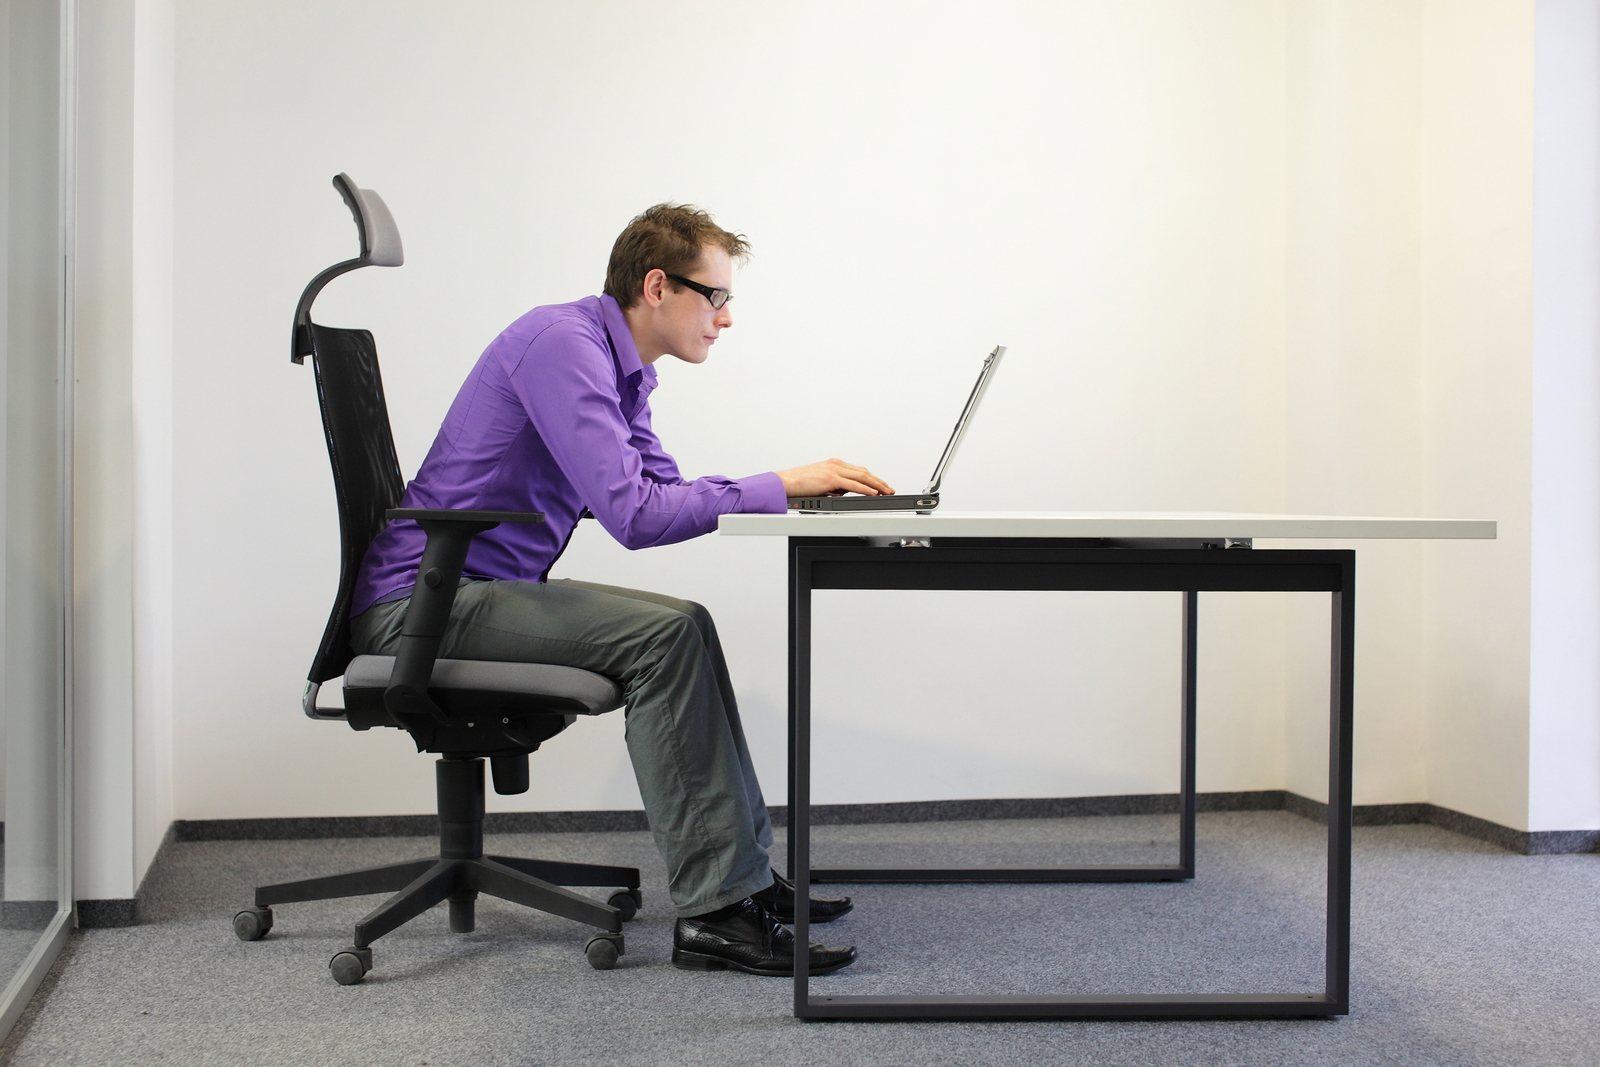 ergonomic chair keyboard position folding plastic chairs selecting the right and adjustable tray